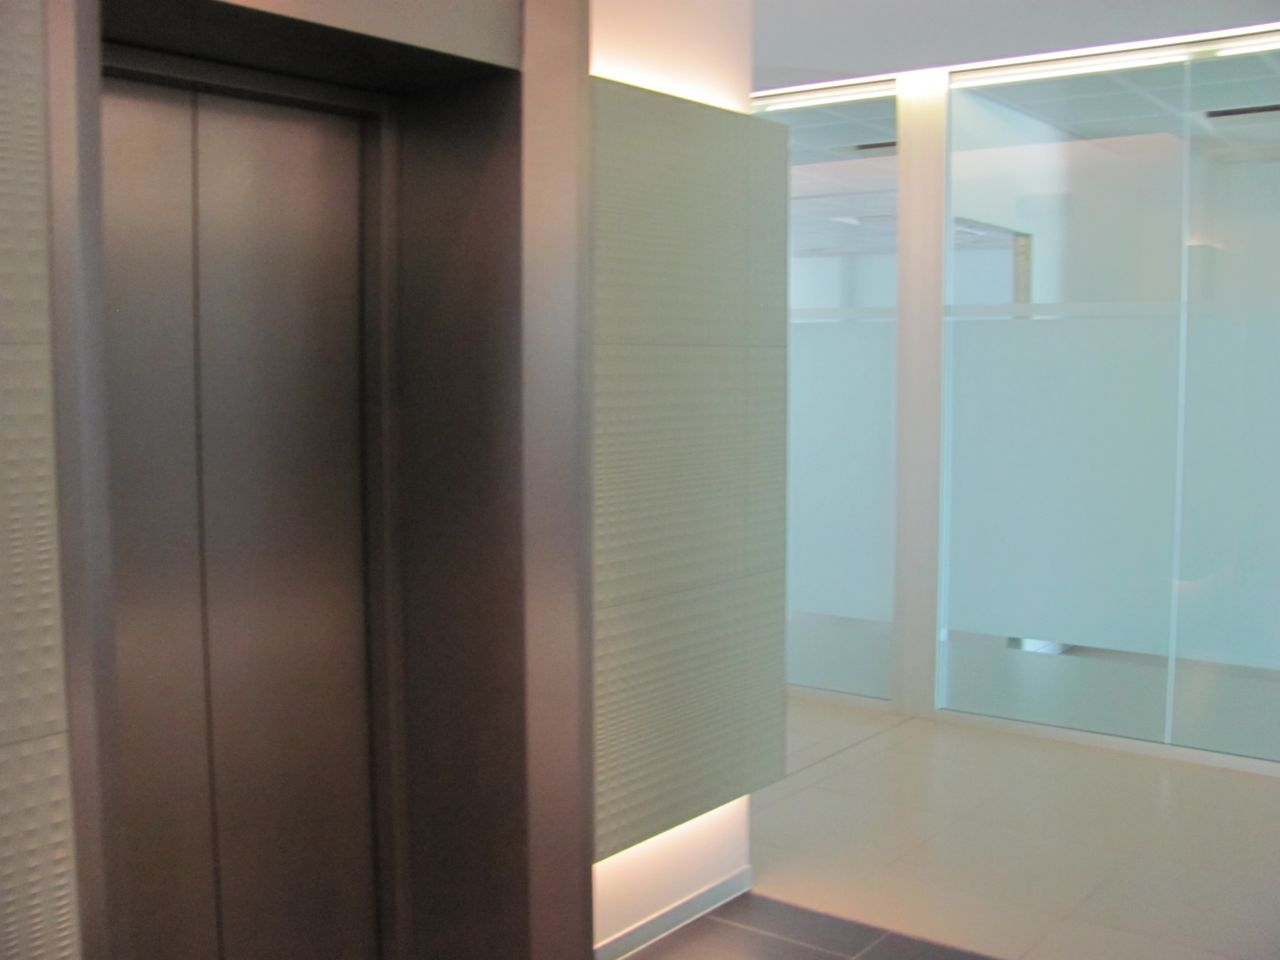 Office for Rent in very good conditions and situated in a great location in Tirana, Albania